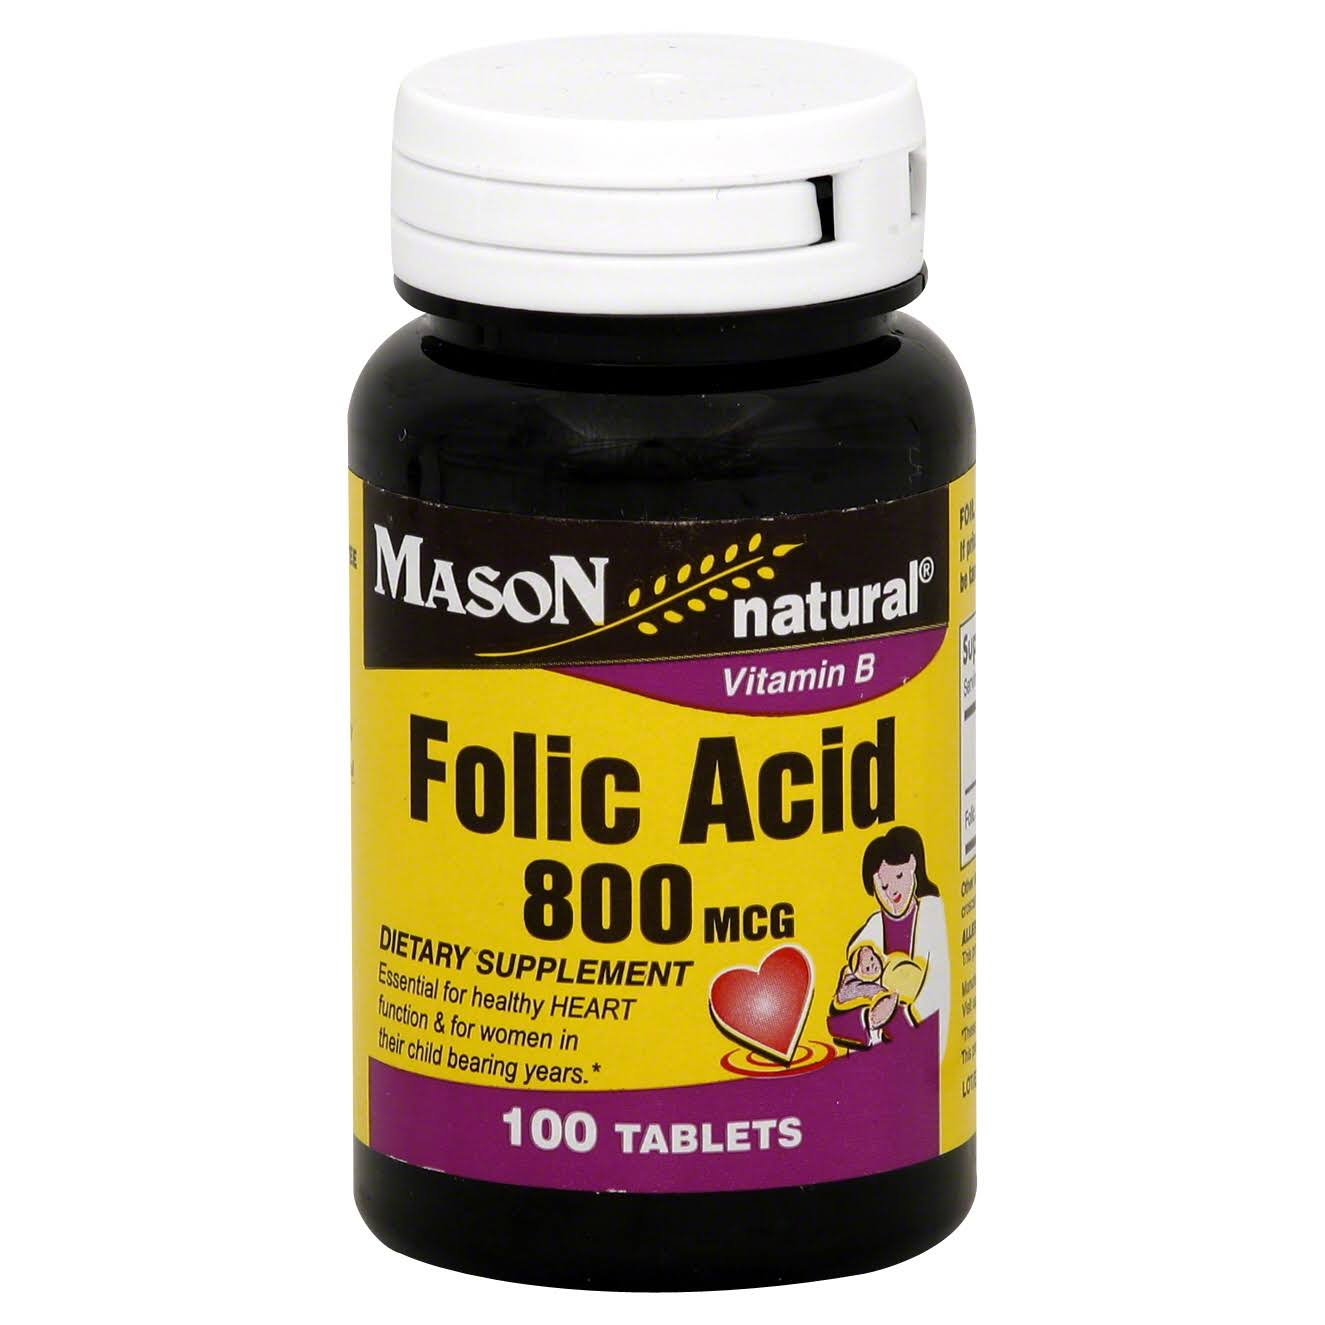 Mason Natural Vitamin B Folic Acid Dietary Supplement - 100 Tablets